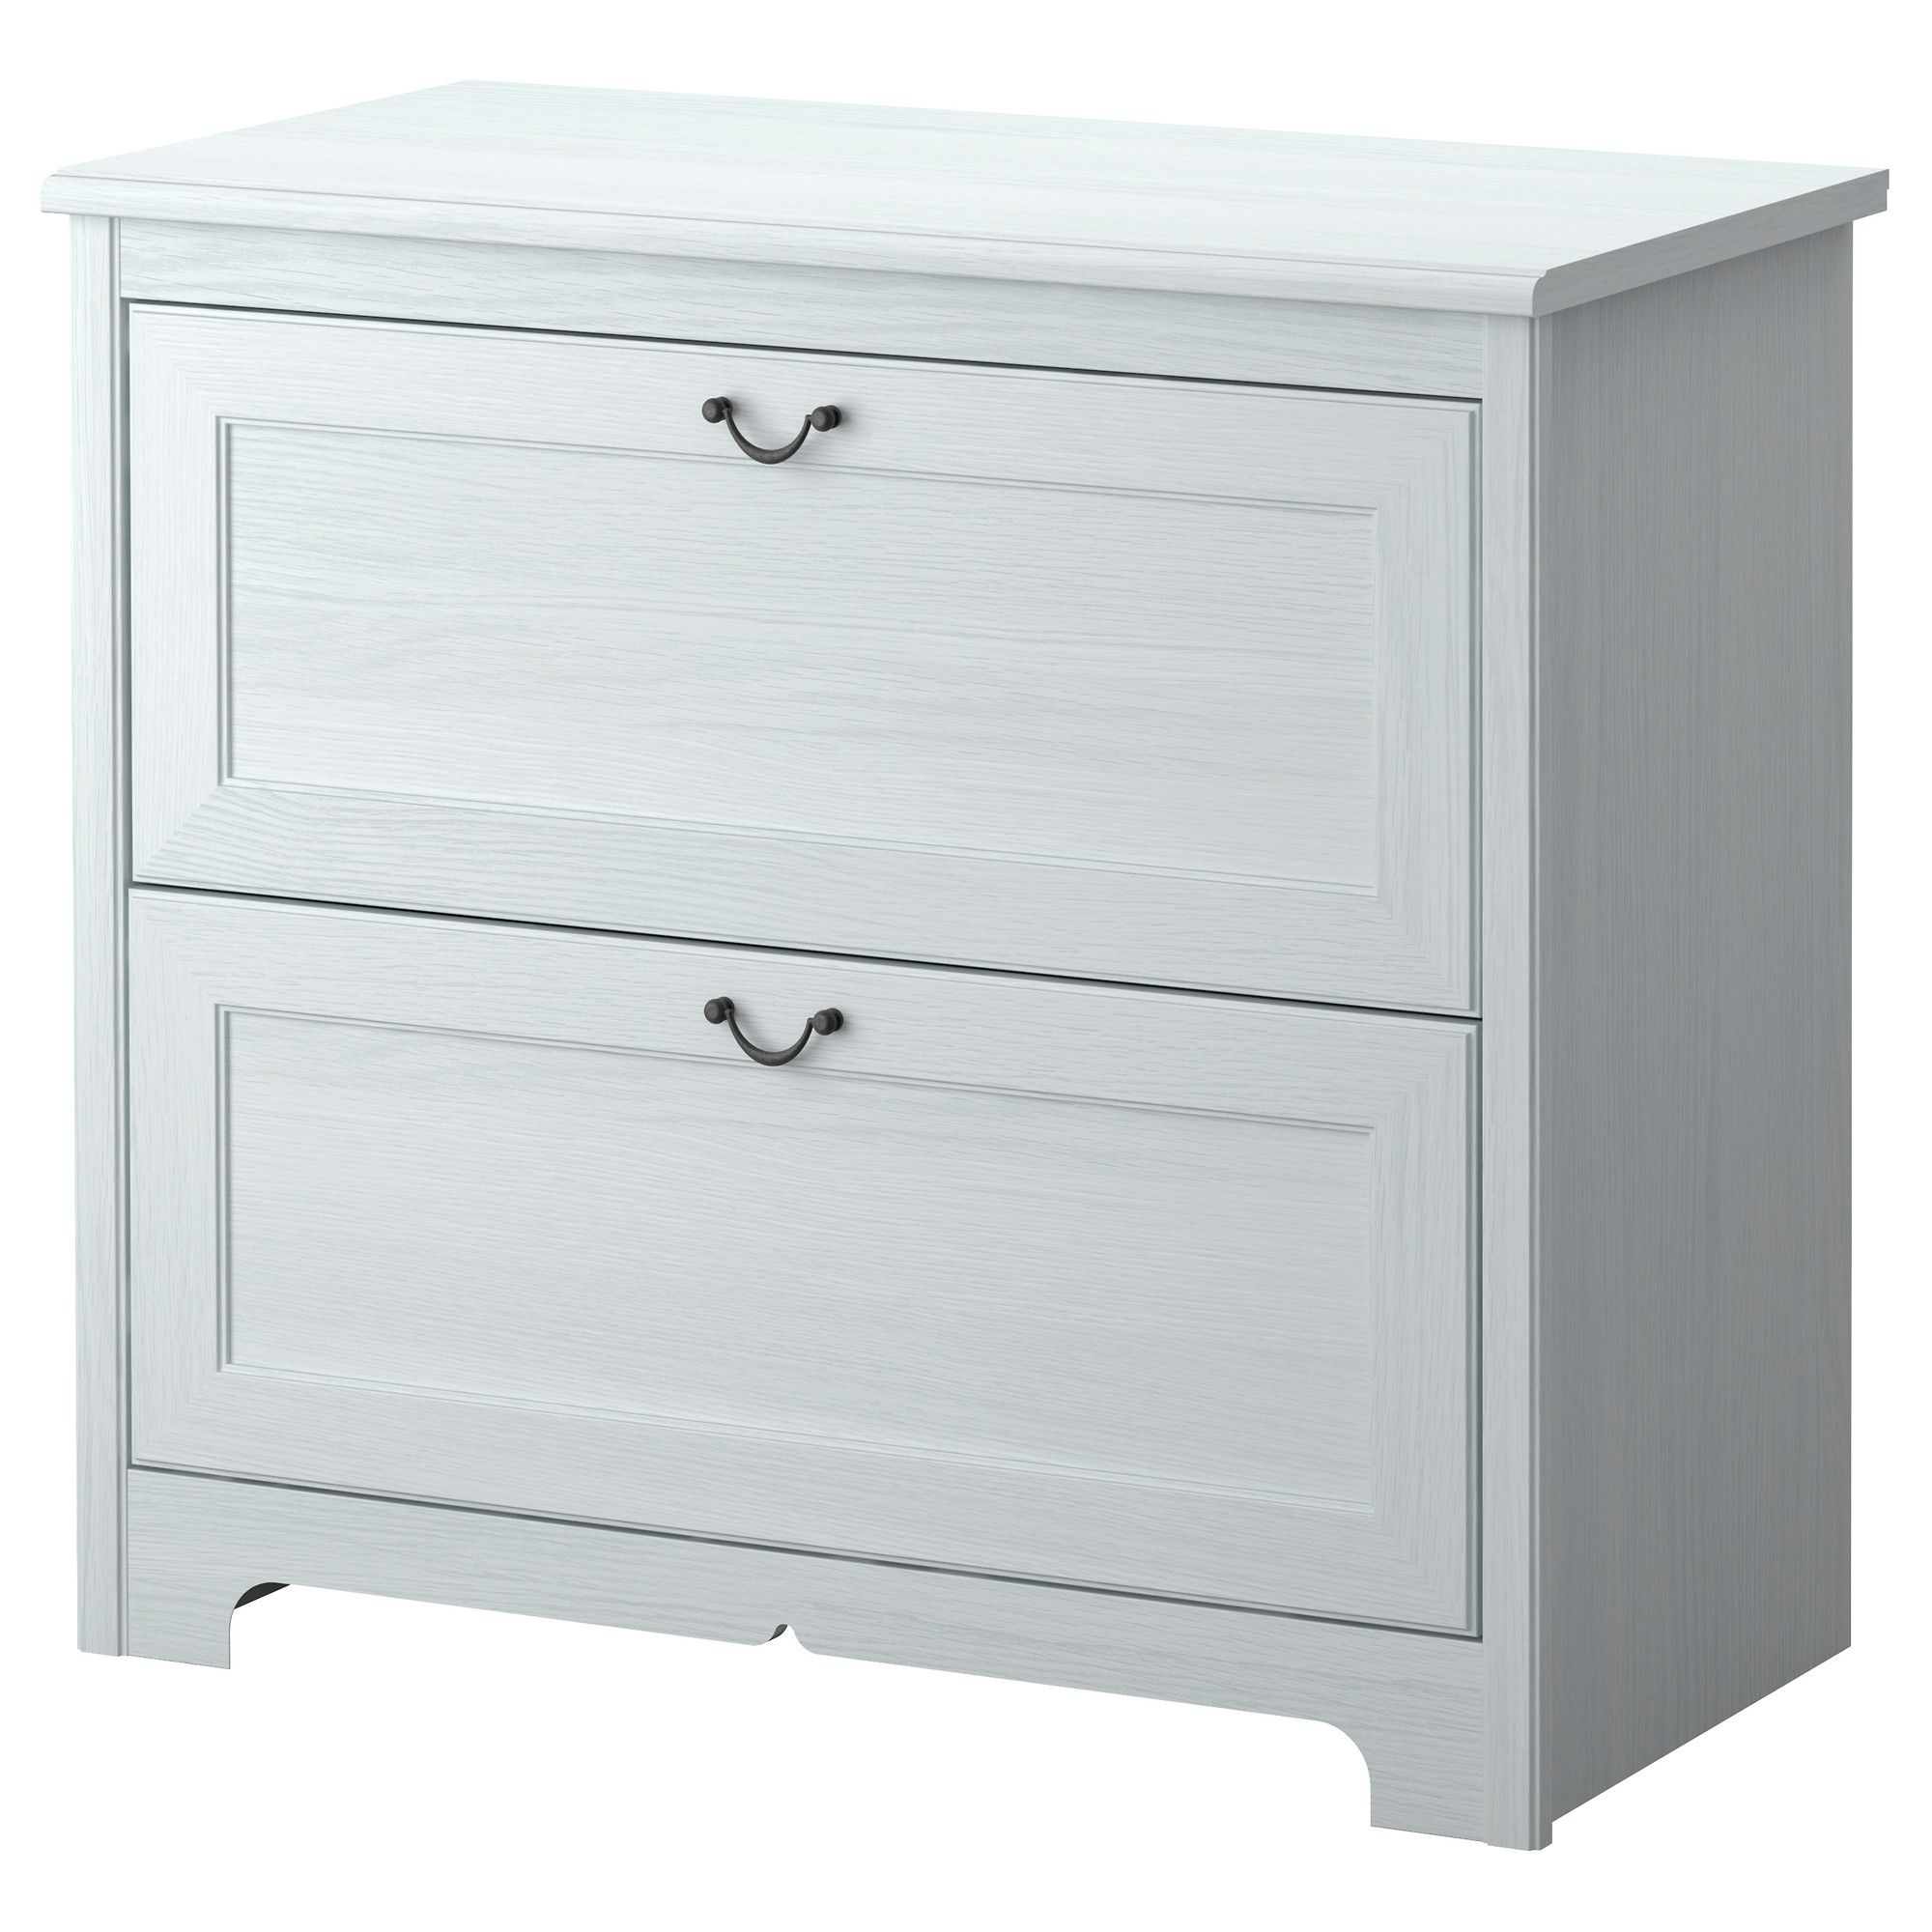 top aspelund chest with drawers ikea w x d x h with leeslamp ikea. Black Bedroom Furniture Sets. Home Design Ideas